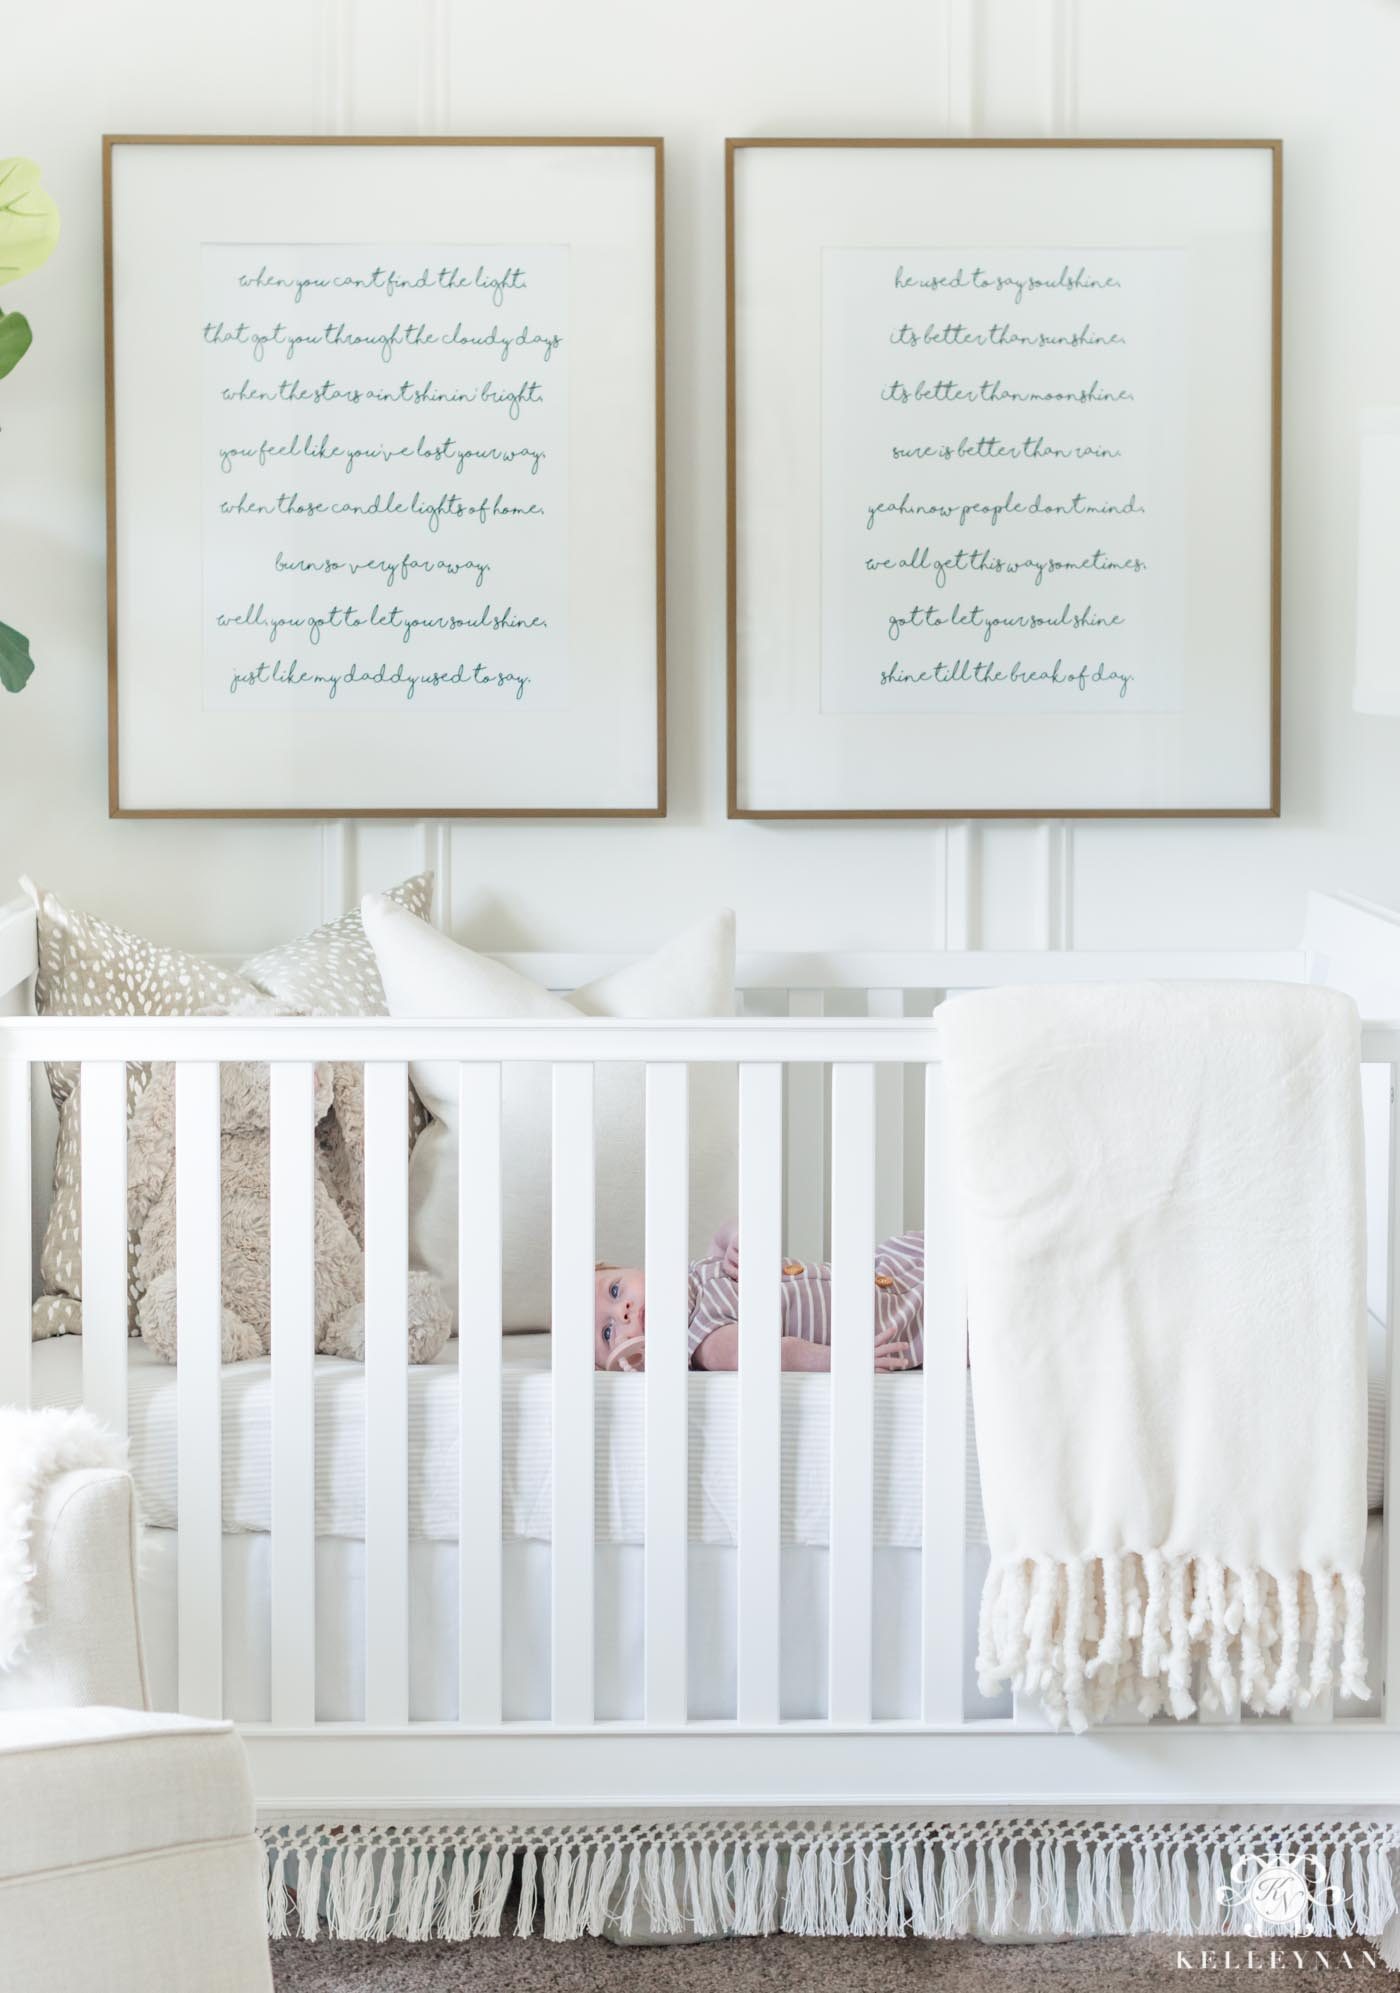 20 Classic Song Lyrics as Art Above the Baby Nursery Crib